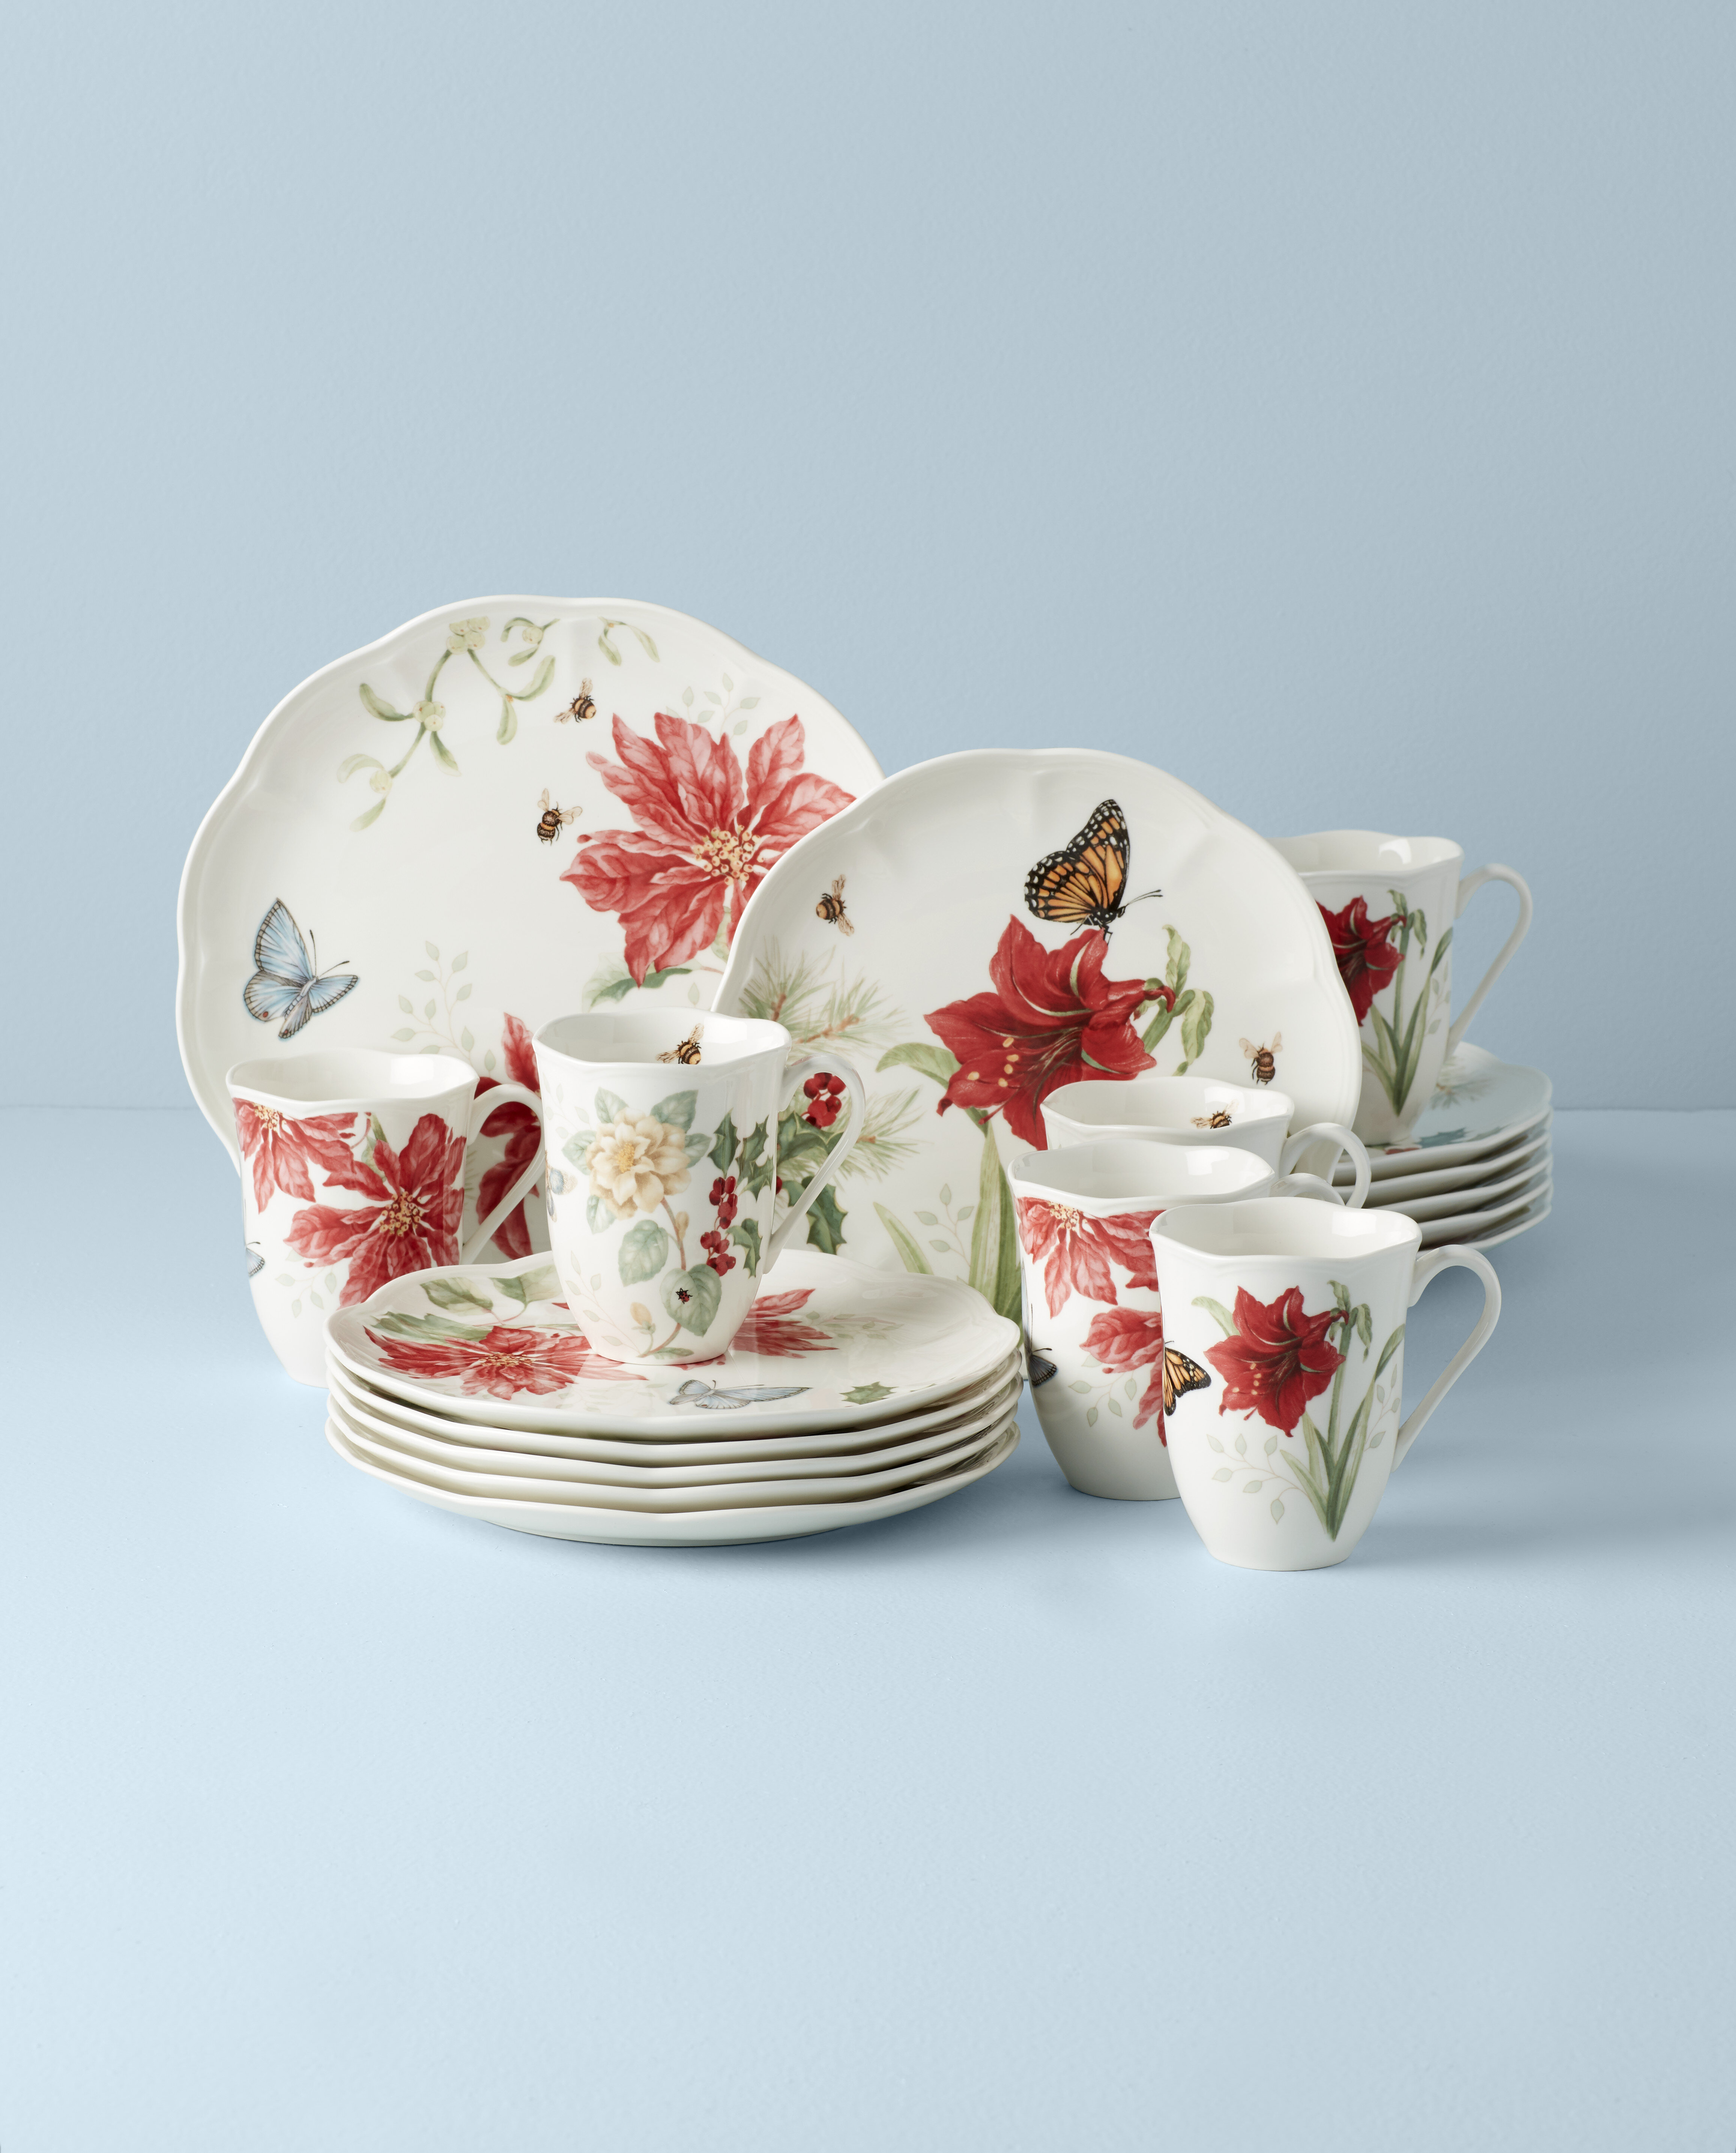 Christmas Dishes Dinnerware Sets You Ll Love In 2021 Wayfair